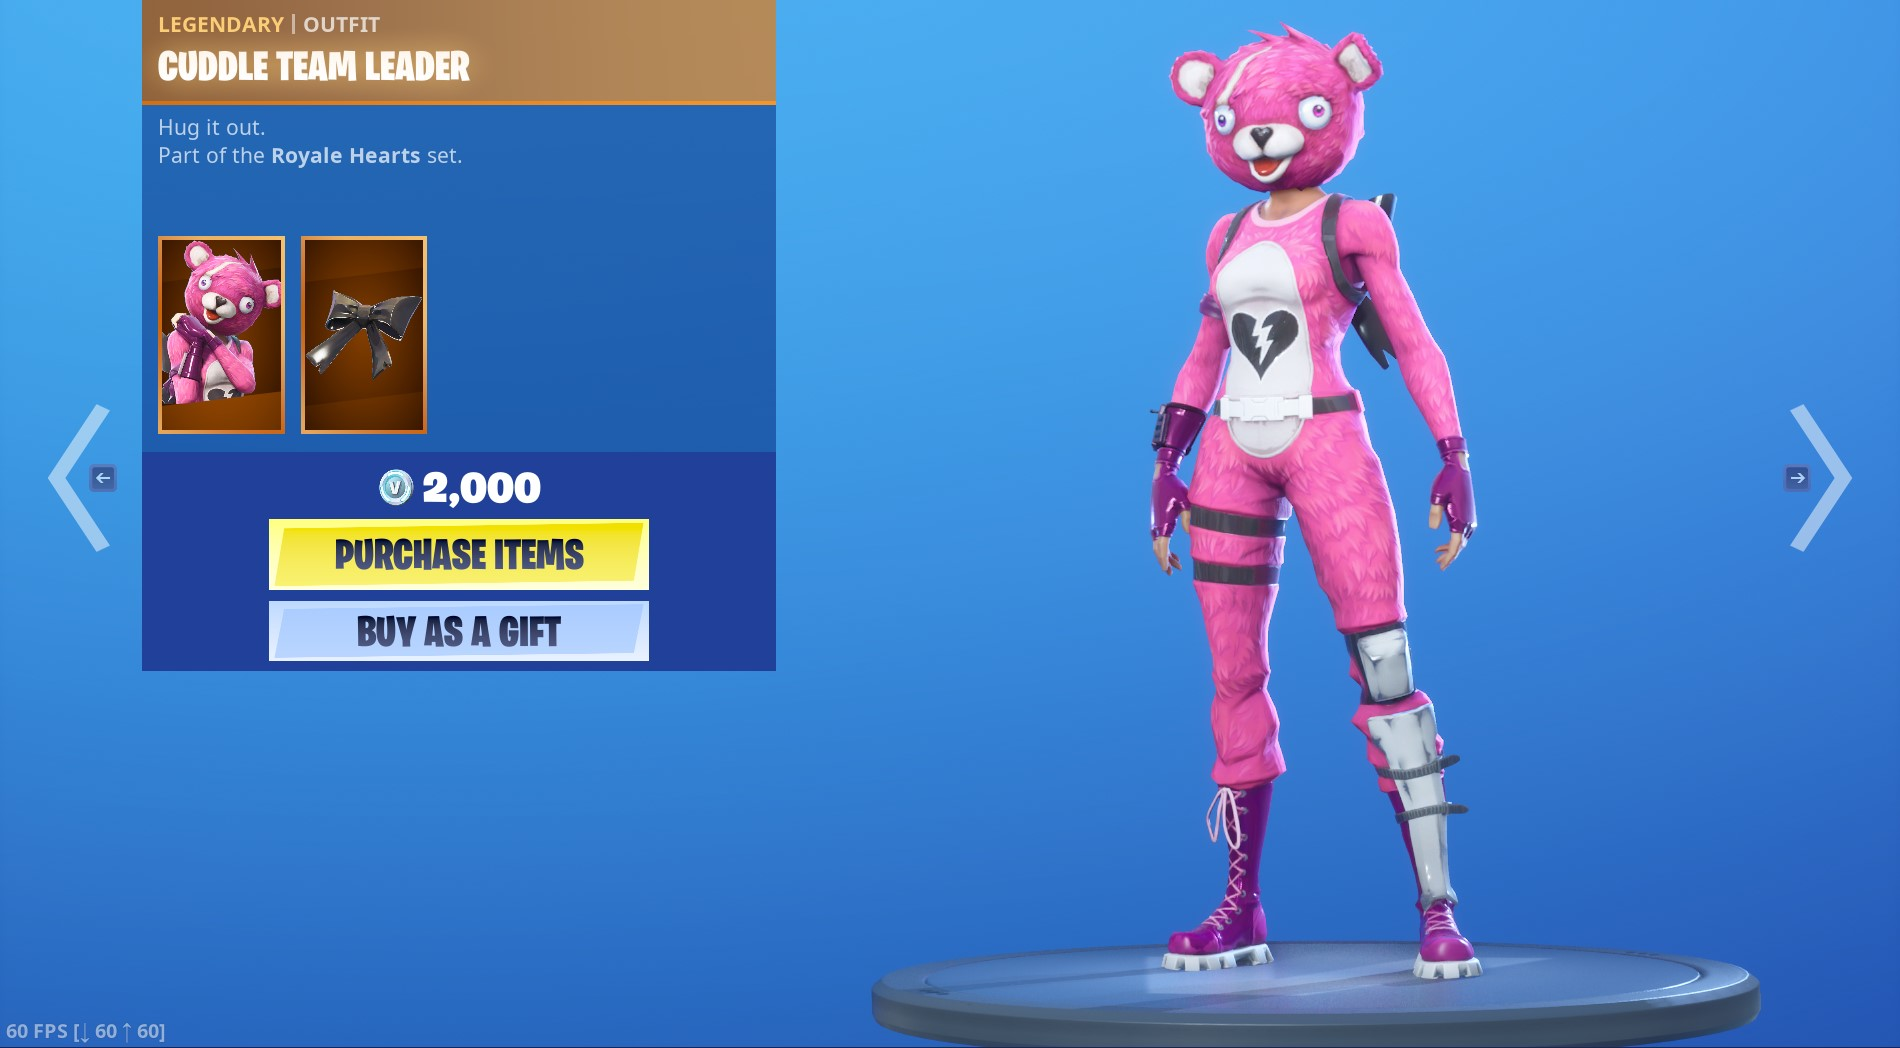 Legendary Cuddle Team Leader Outfit